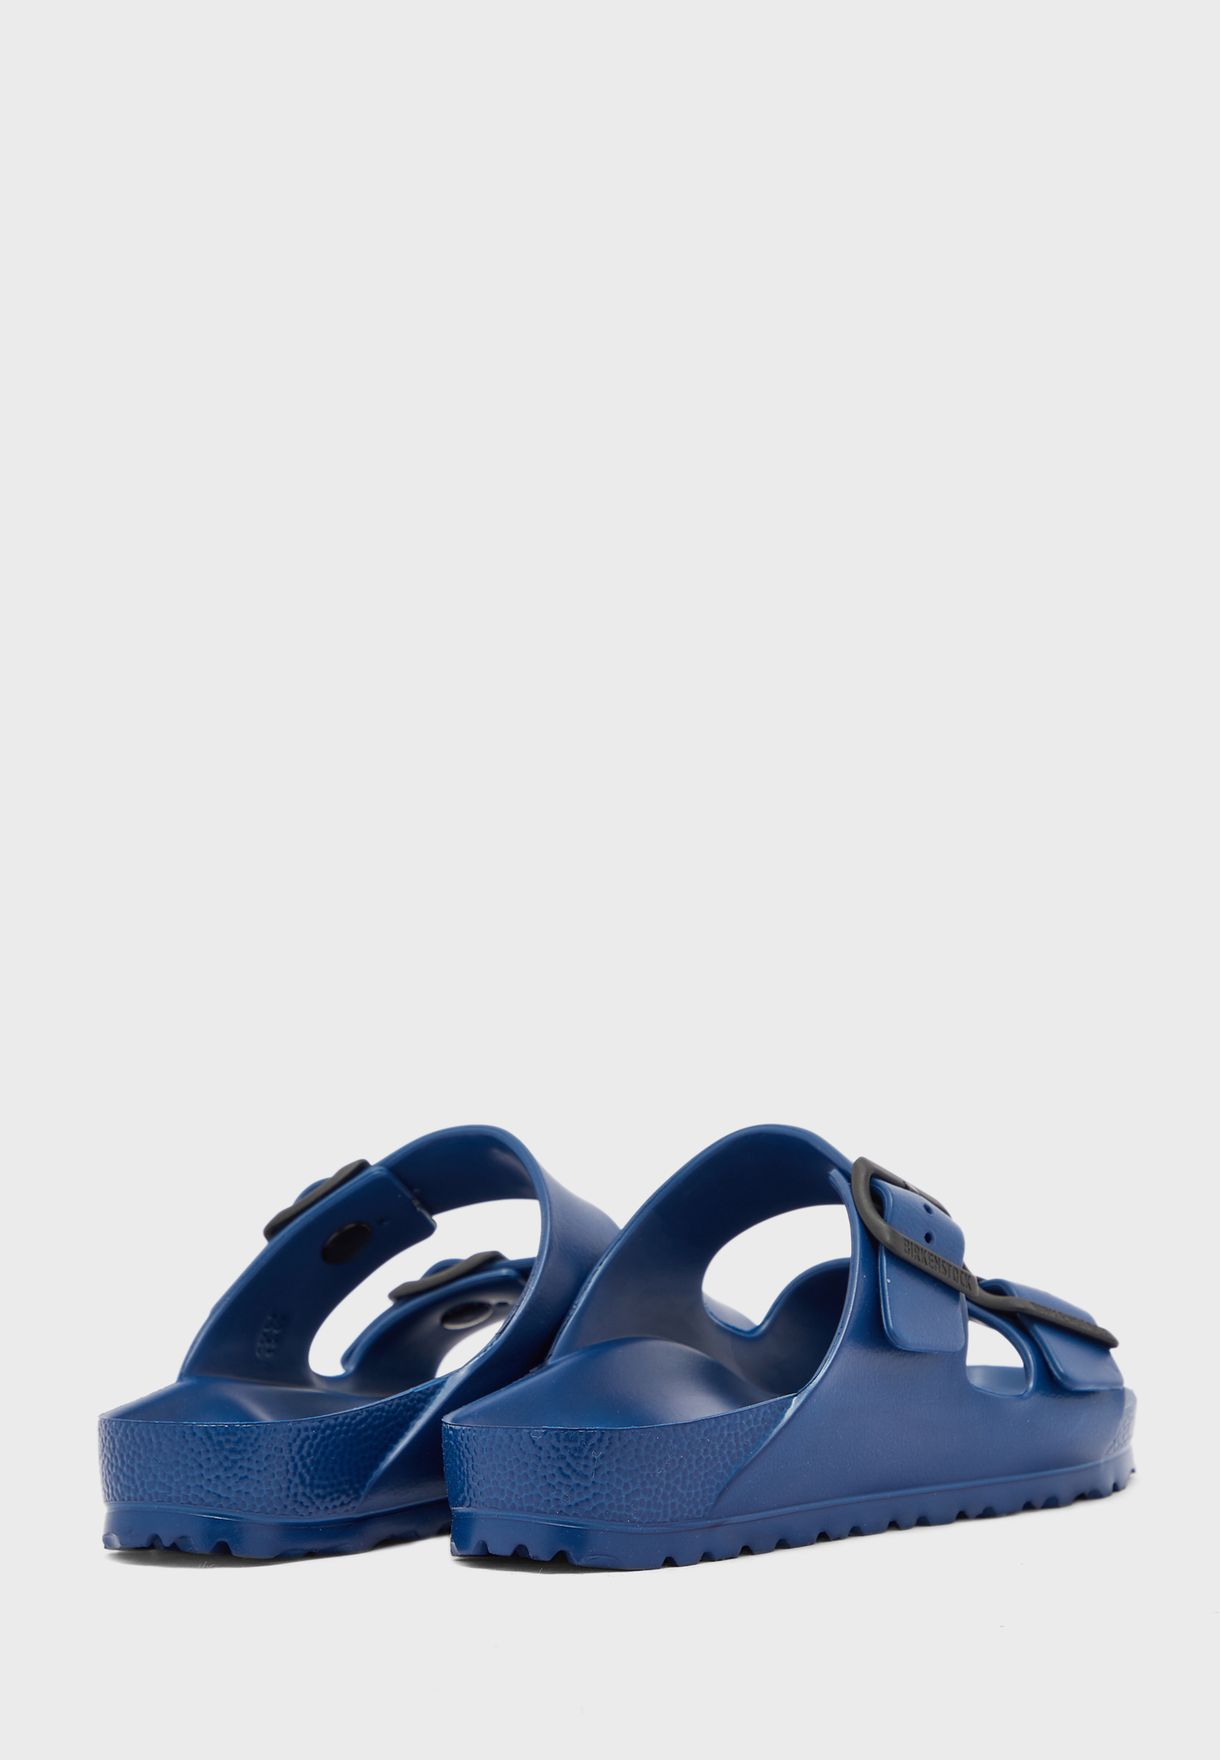 Two Strap Buckled Sandal